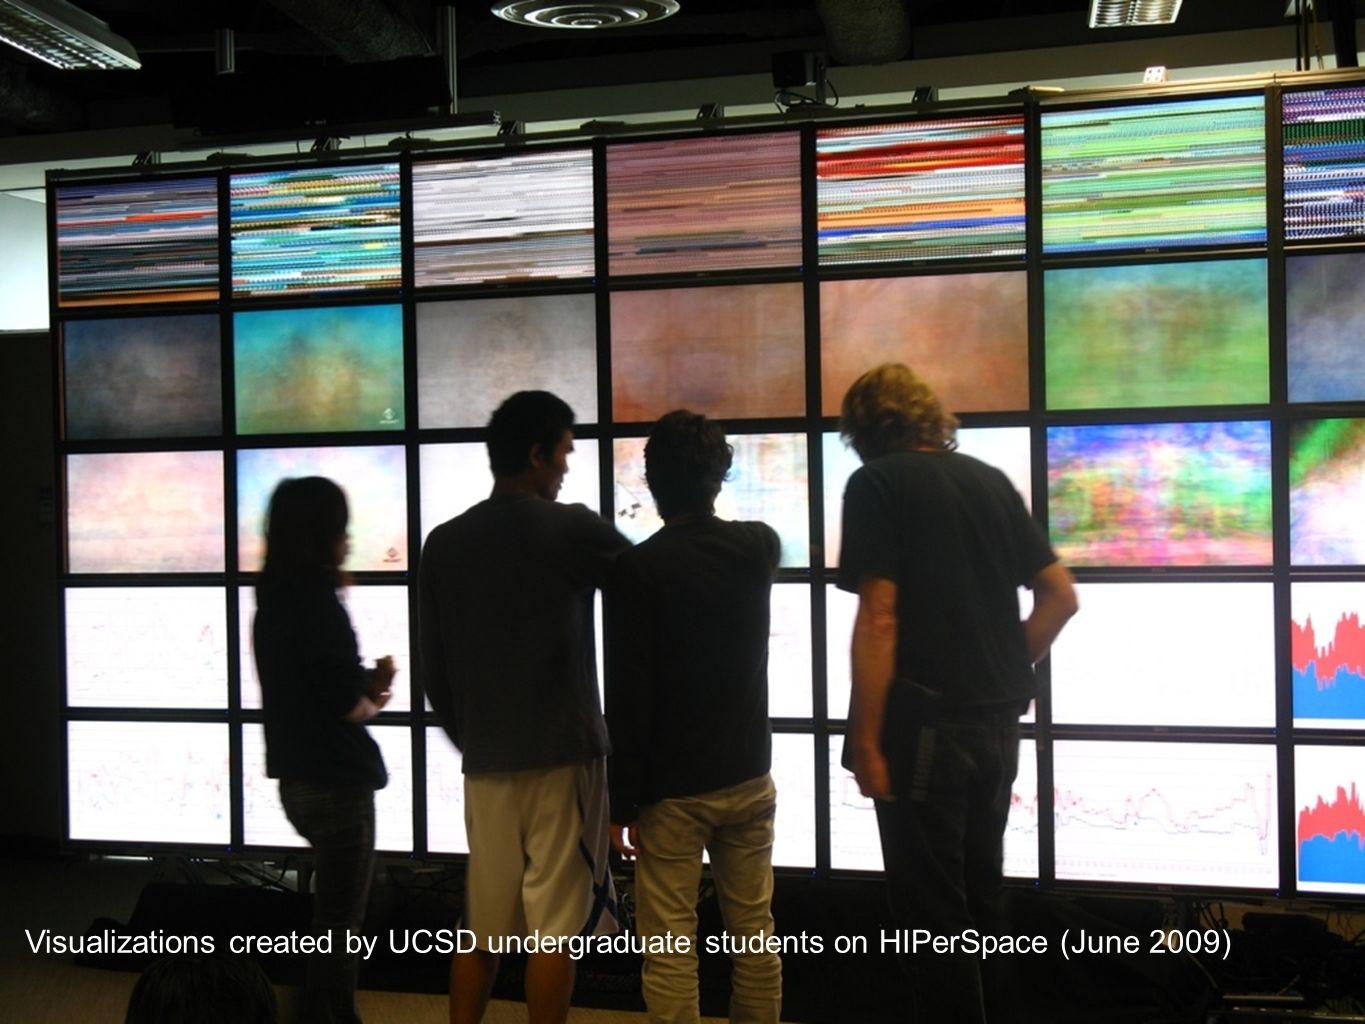 Visualizations created by UCSD undergraduate students on HIPerSpace (June 2009)